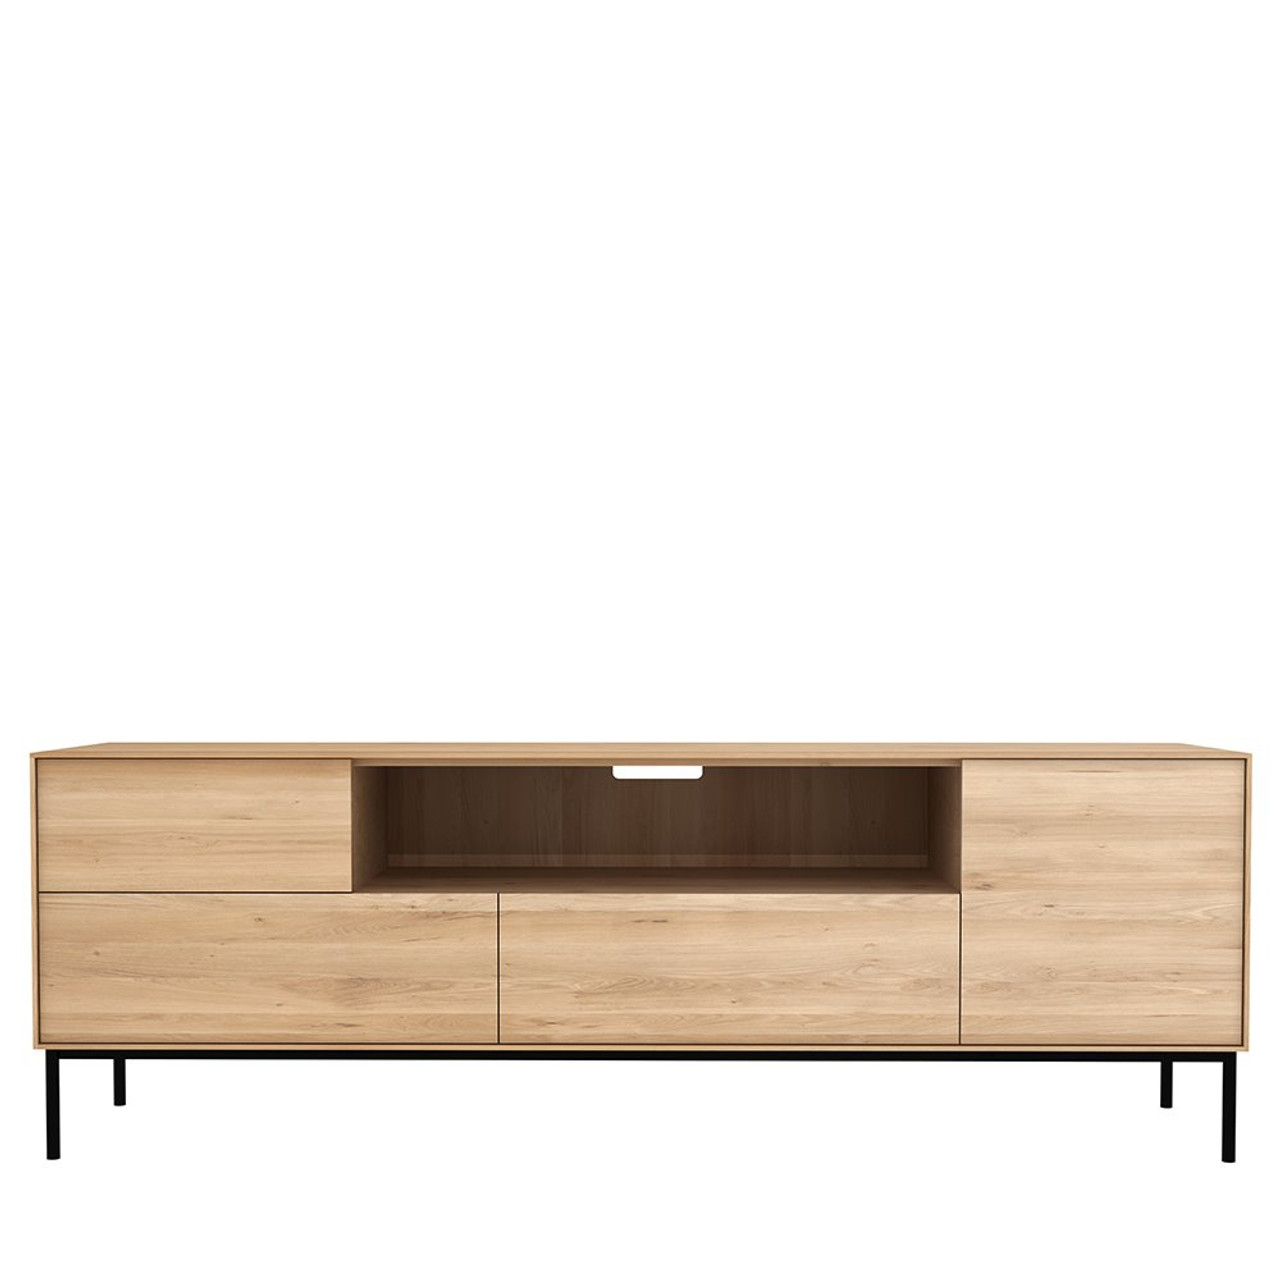 Light Oak Whitebird TV Stand Media Cabinet